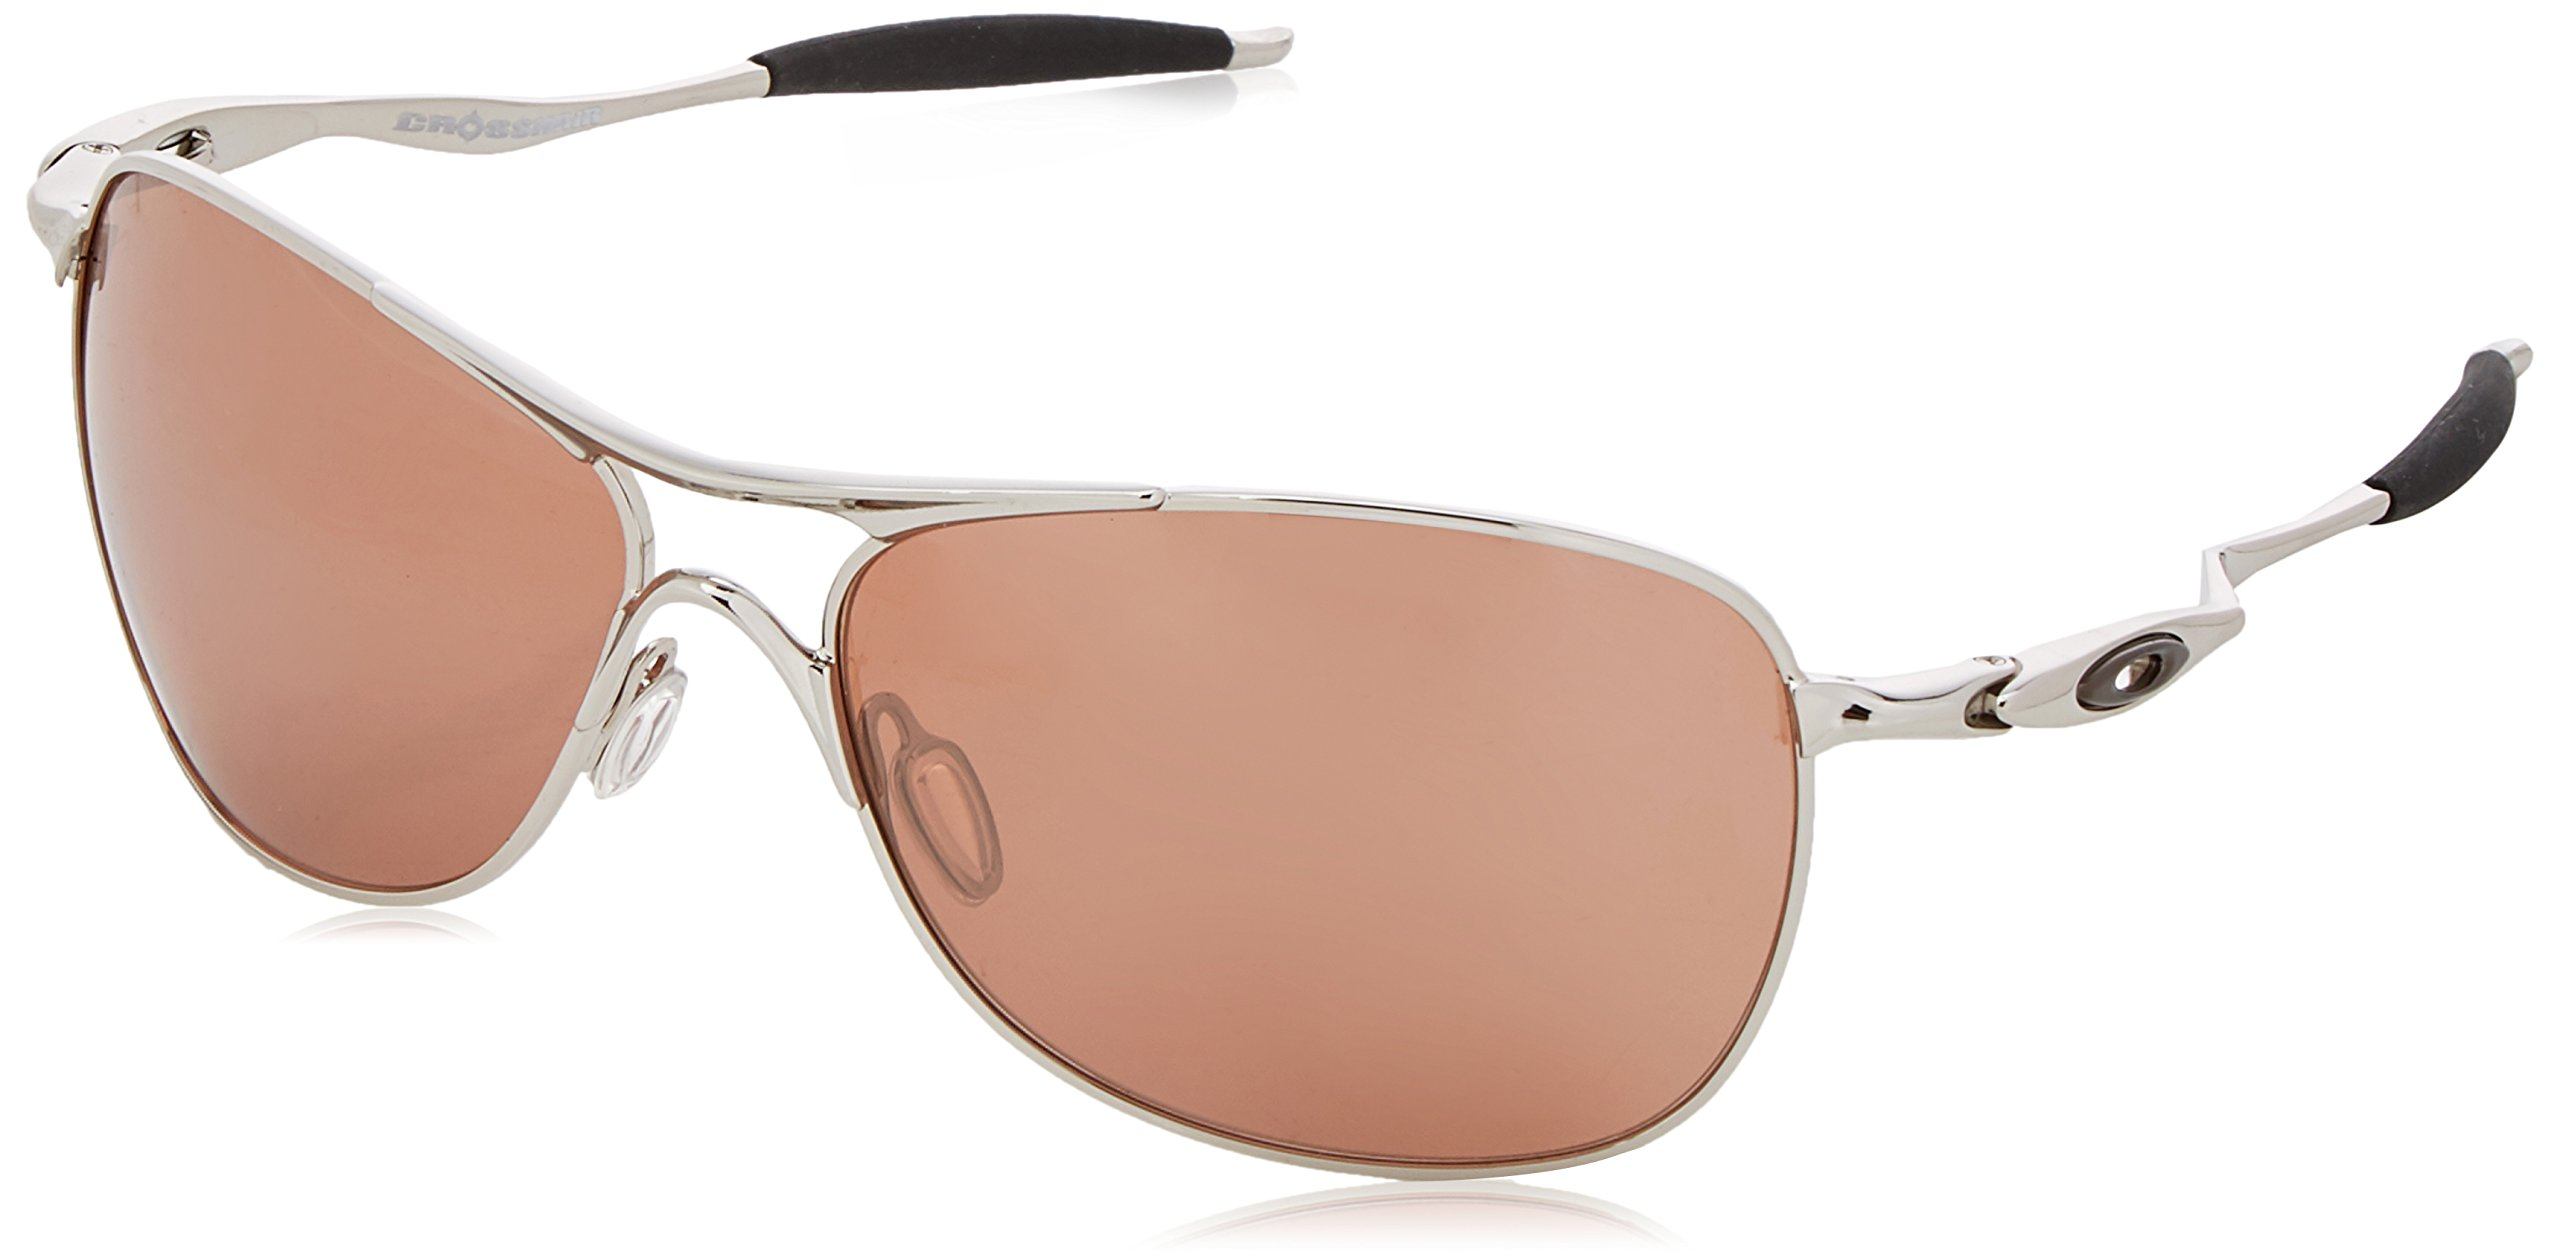 Oakley Men's OO4060 Crosshair Aviator Metal Sunglasses, Chrome/Vr28 Black Iridium, 61 mm